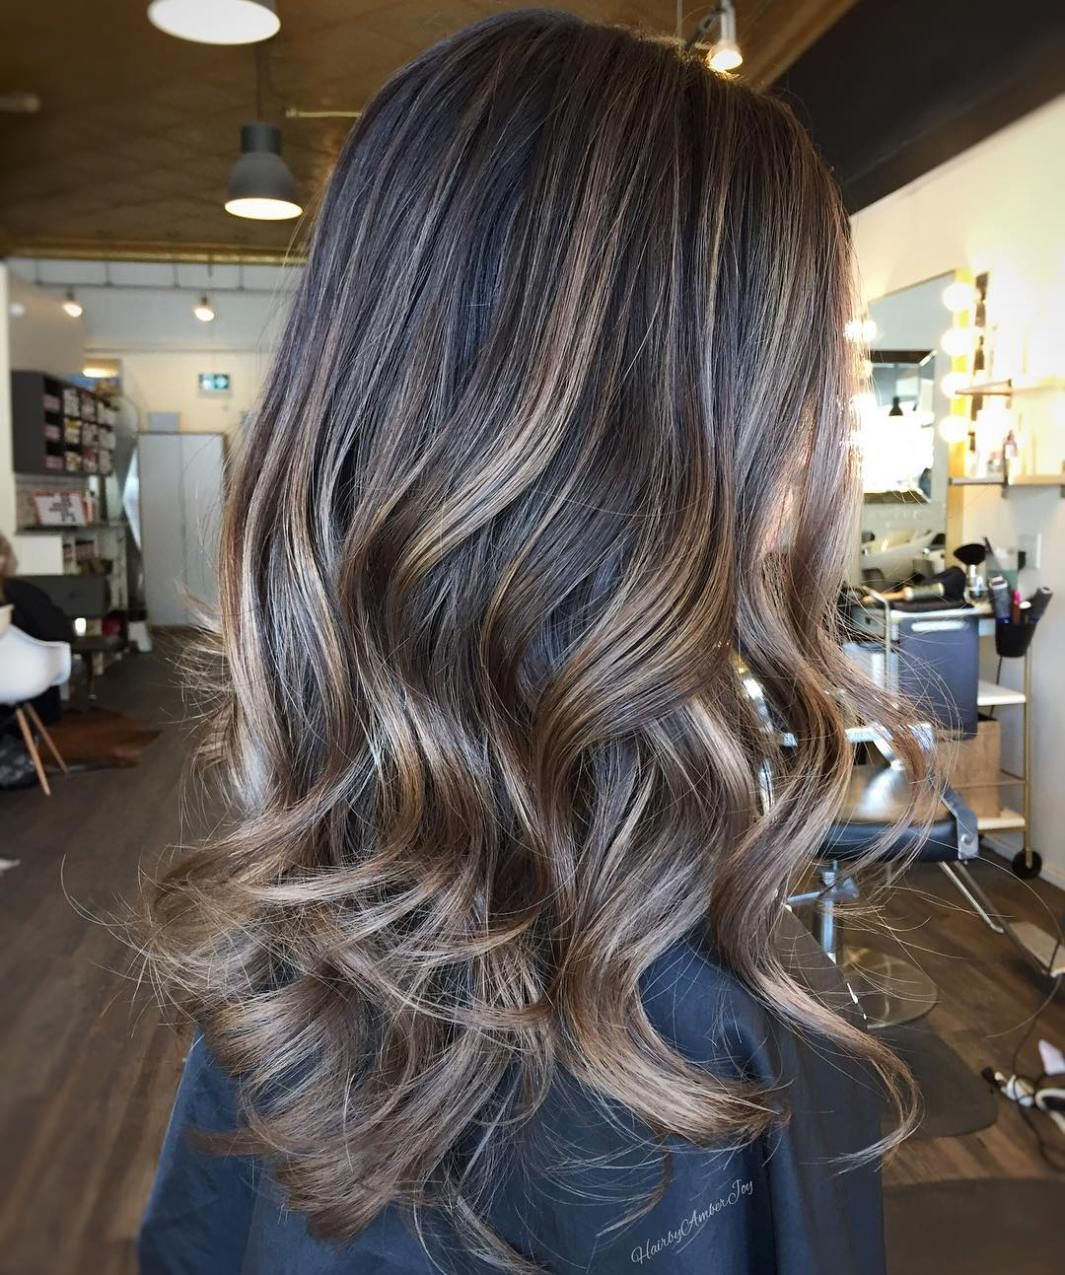 40 Ash Blonde Hair Looks You Ll Swoon Over With Images Brown